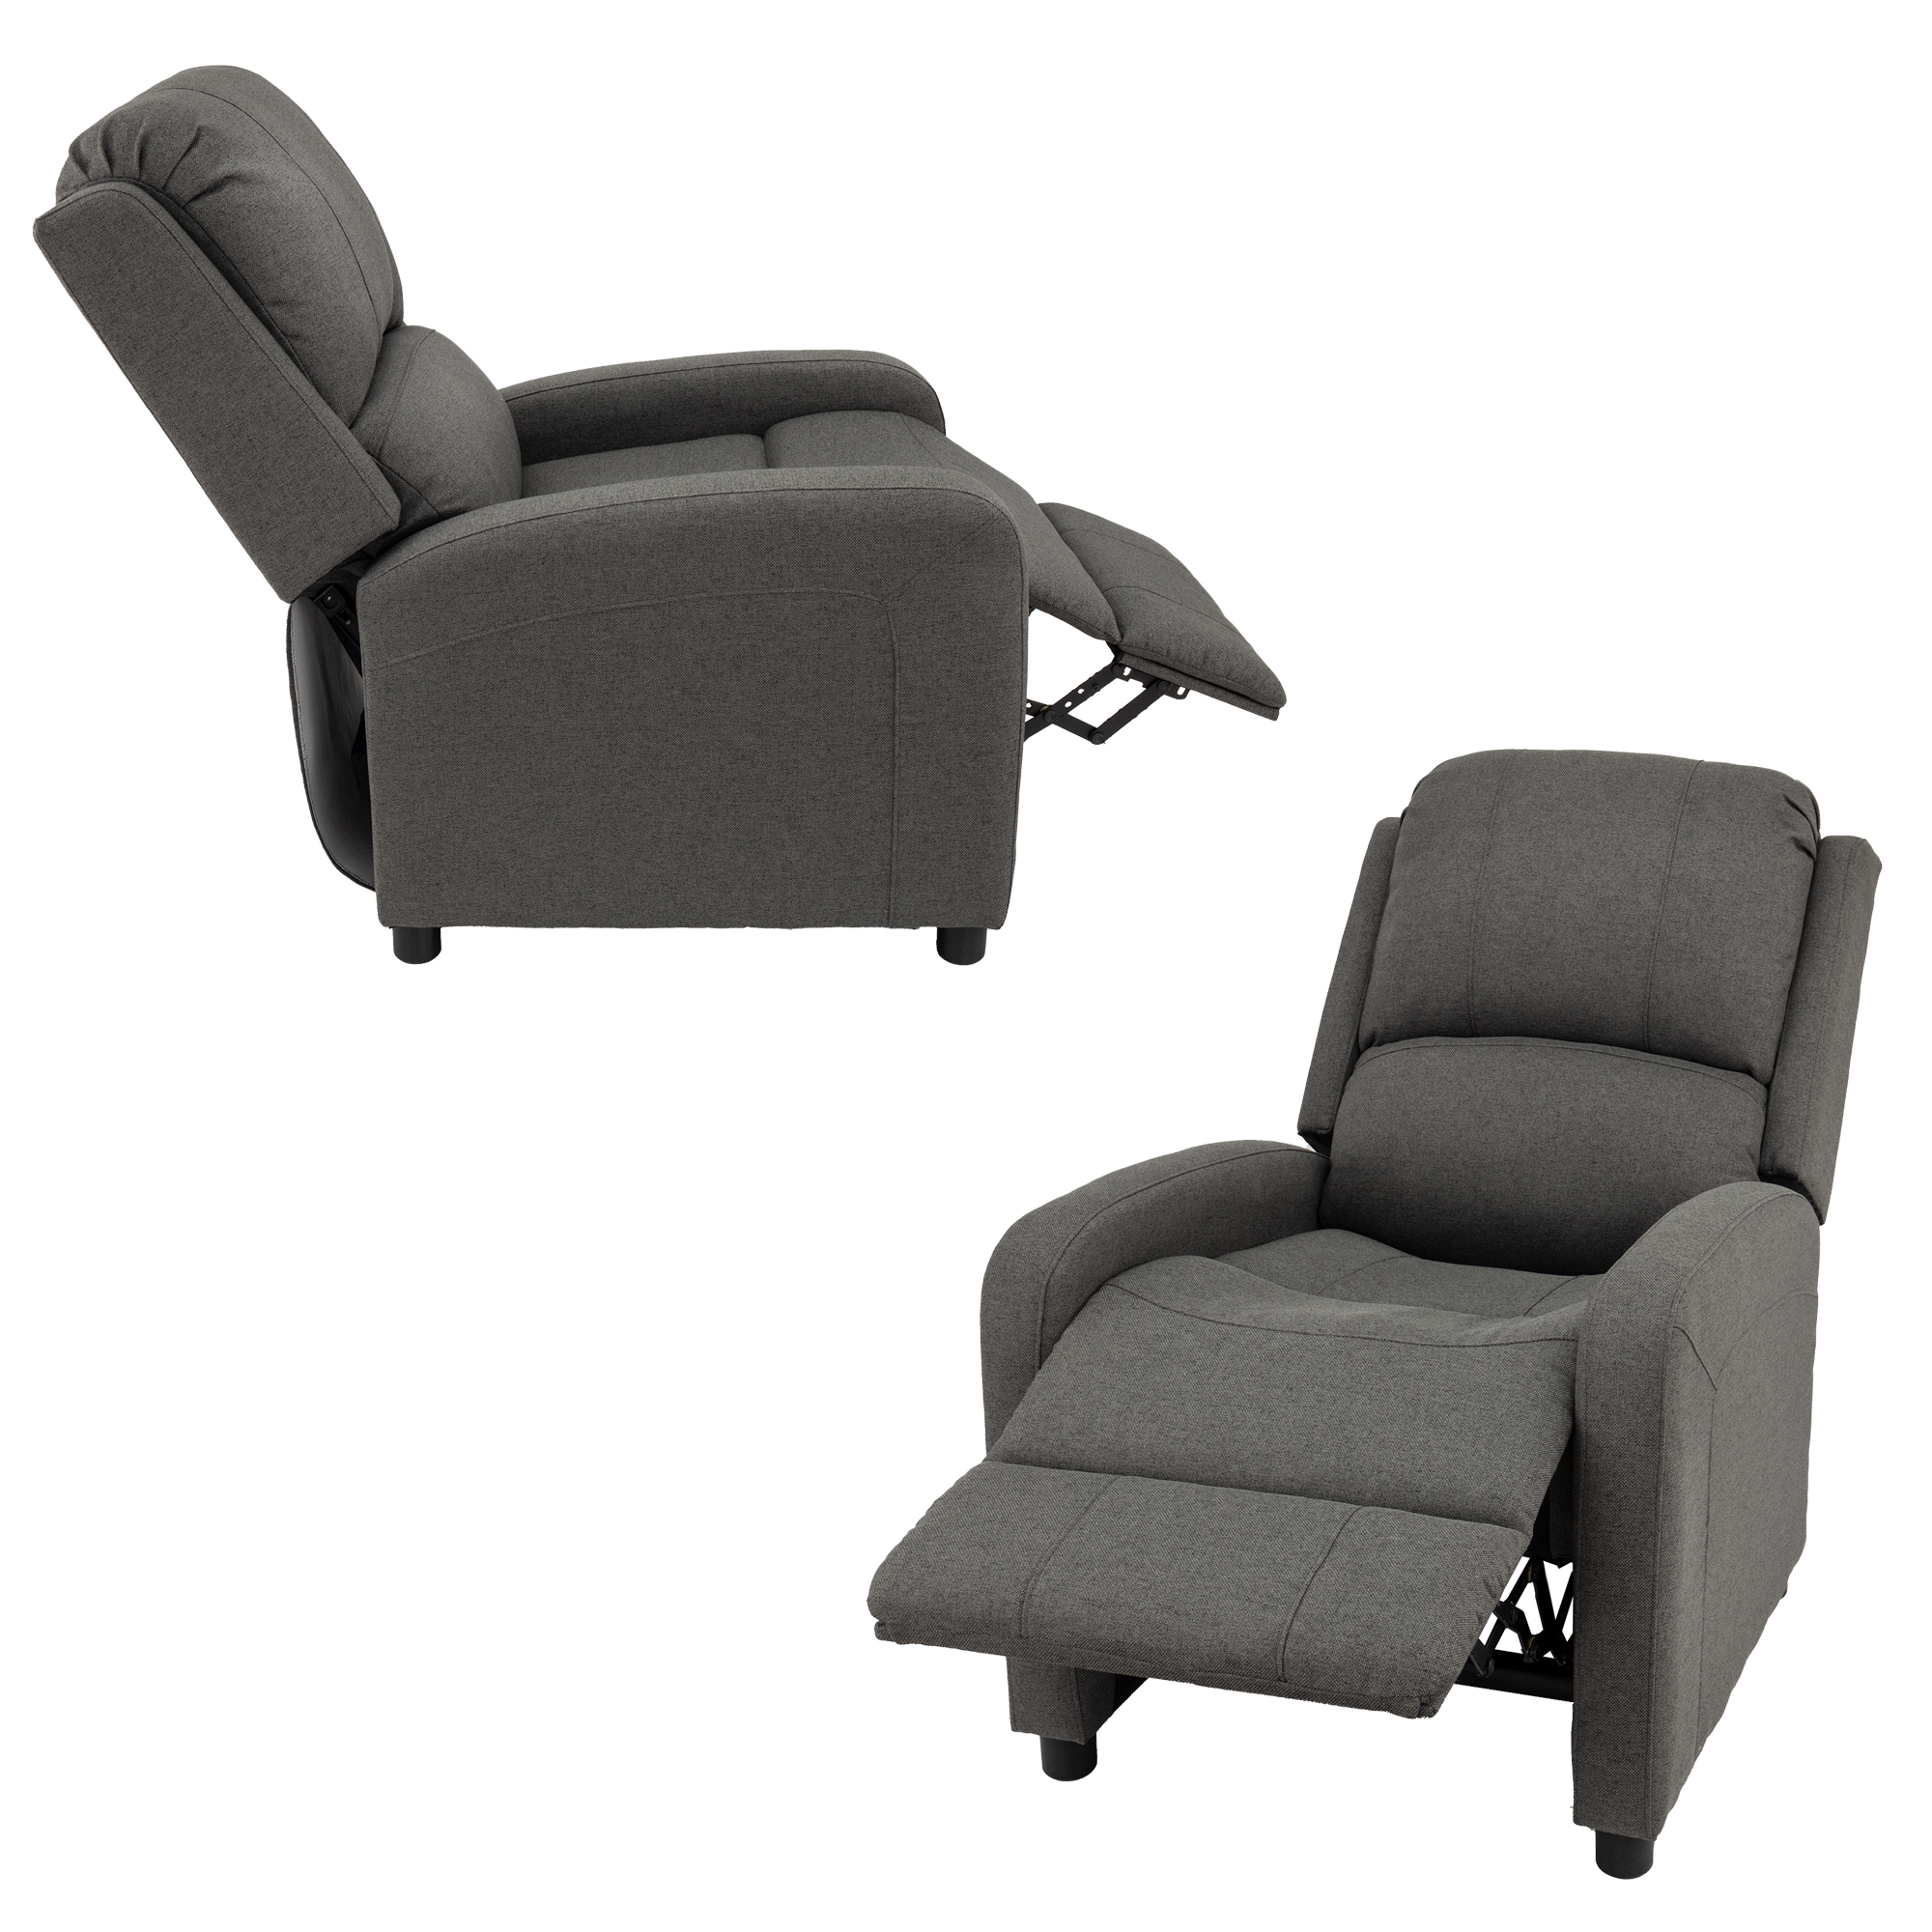 Push Back RV Recliner in Fossil Cloth Show